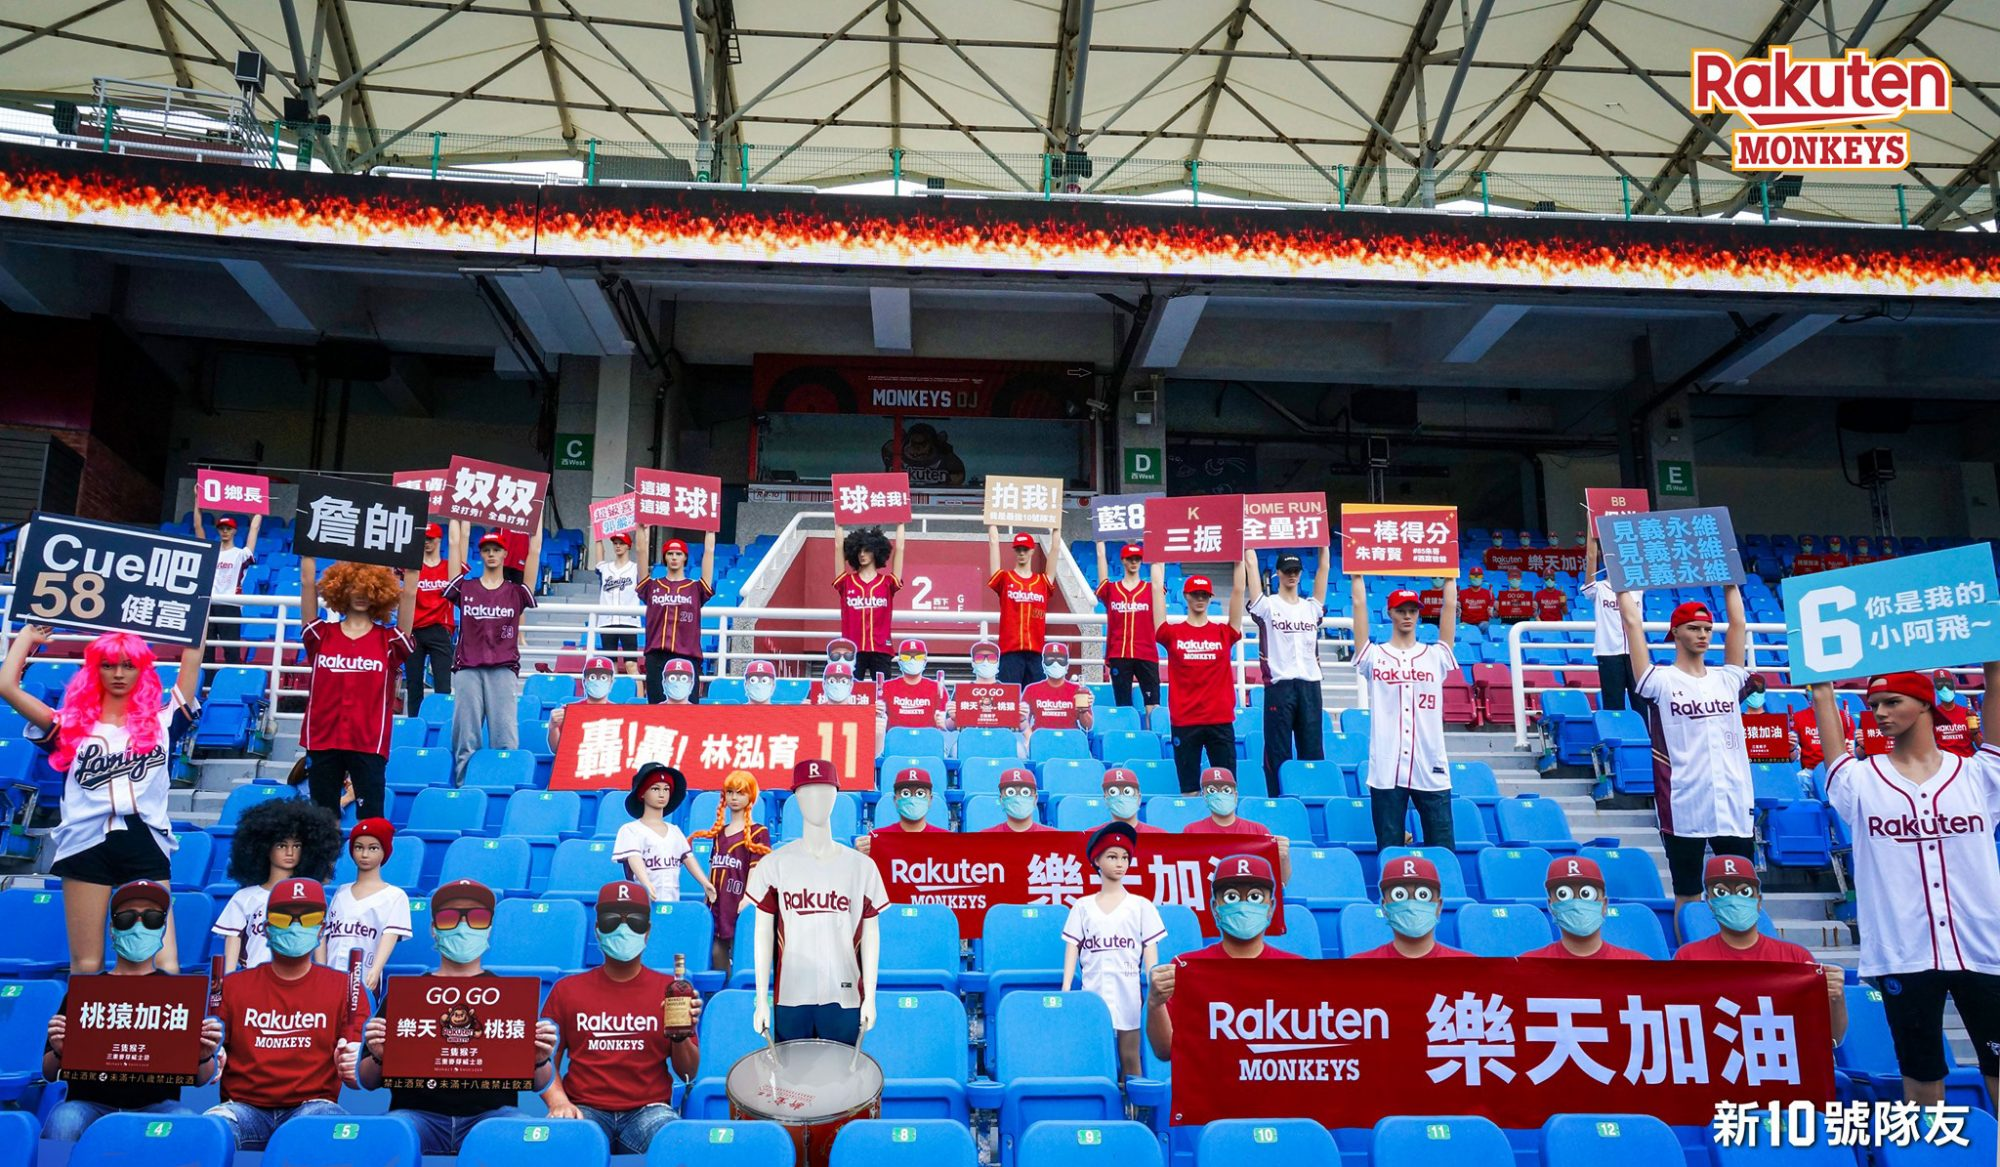 Chinese Baseball Team Putting Robots in the Stands Since Fans Can't Attend